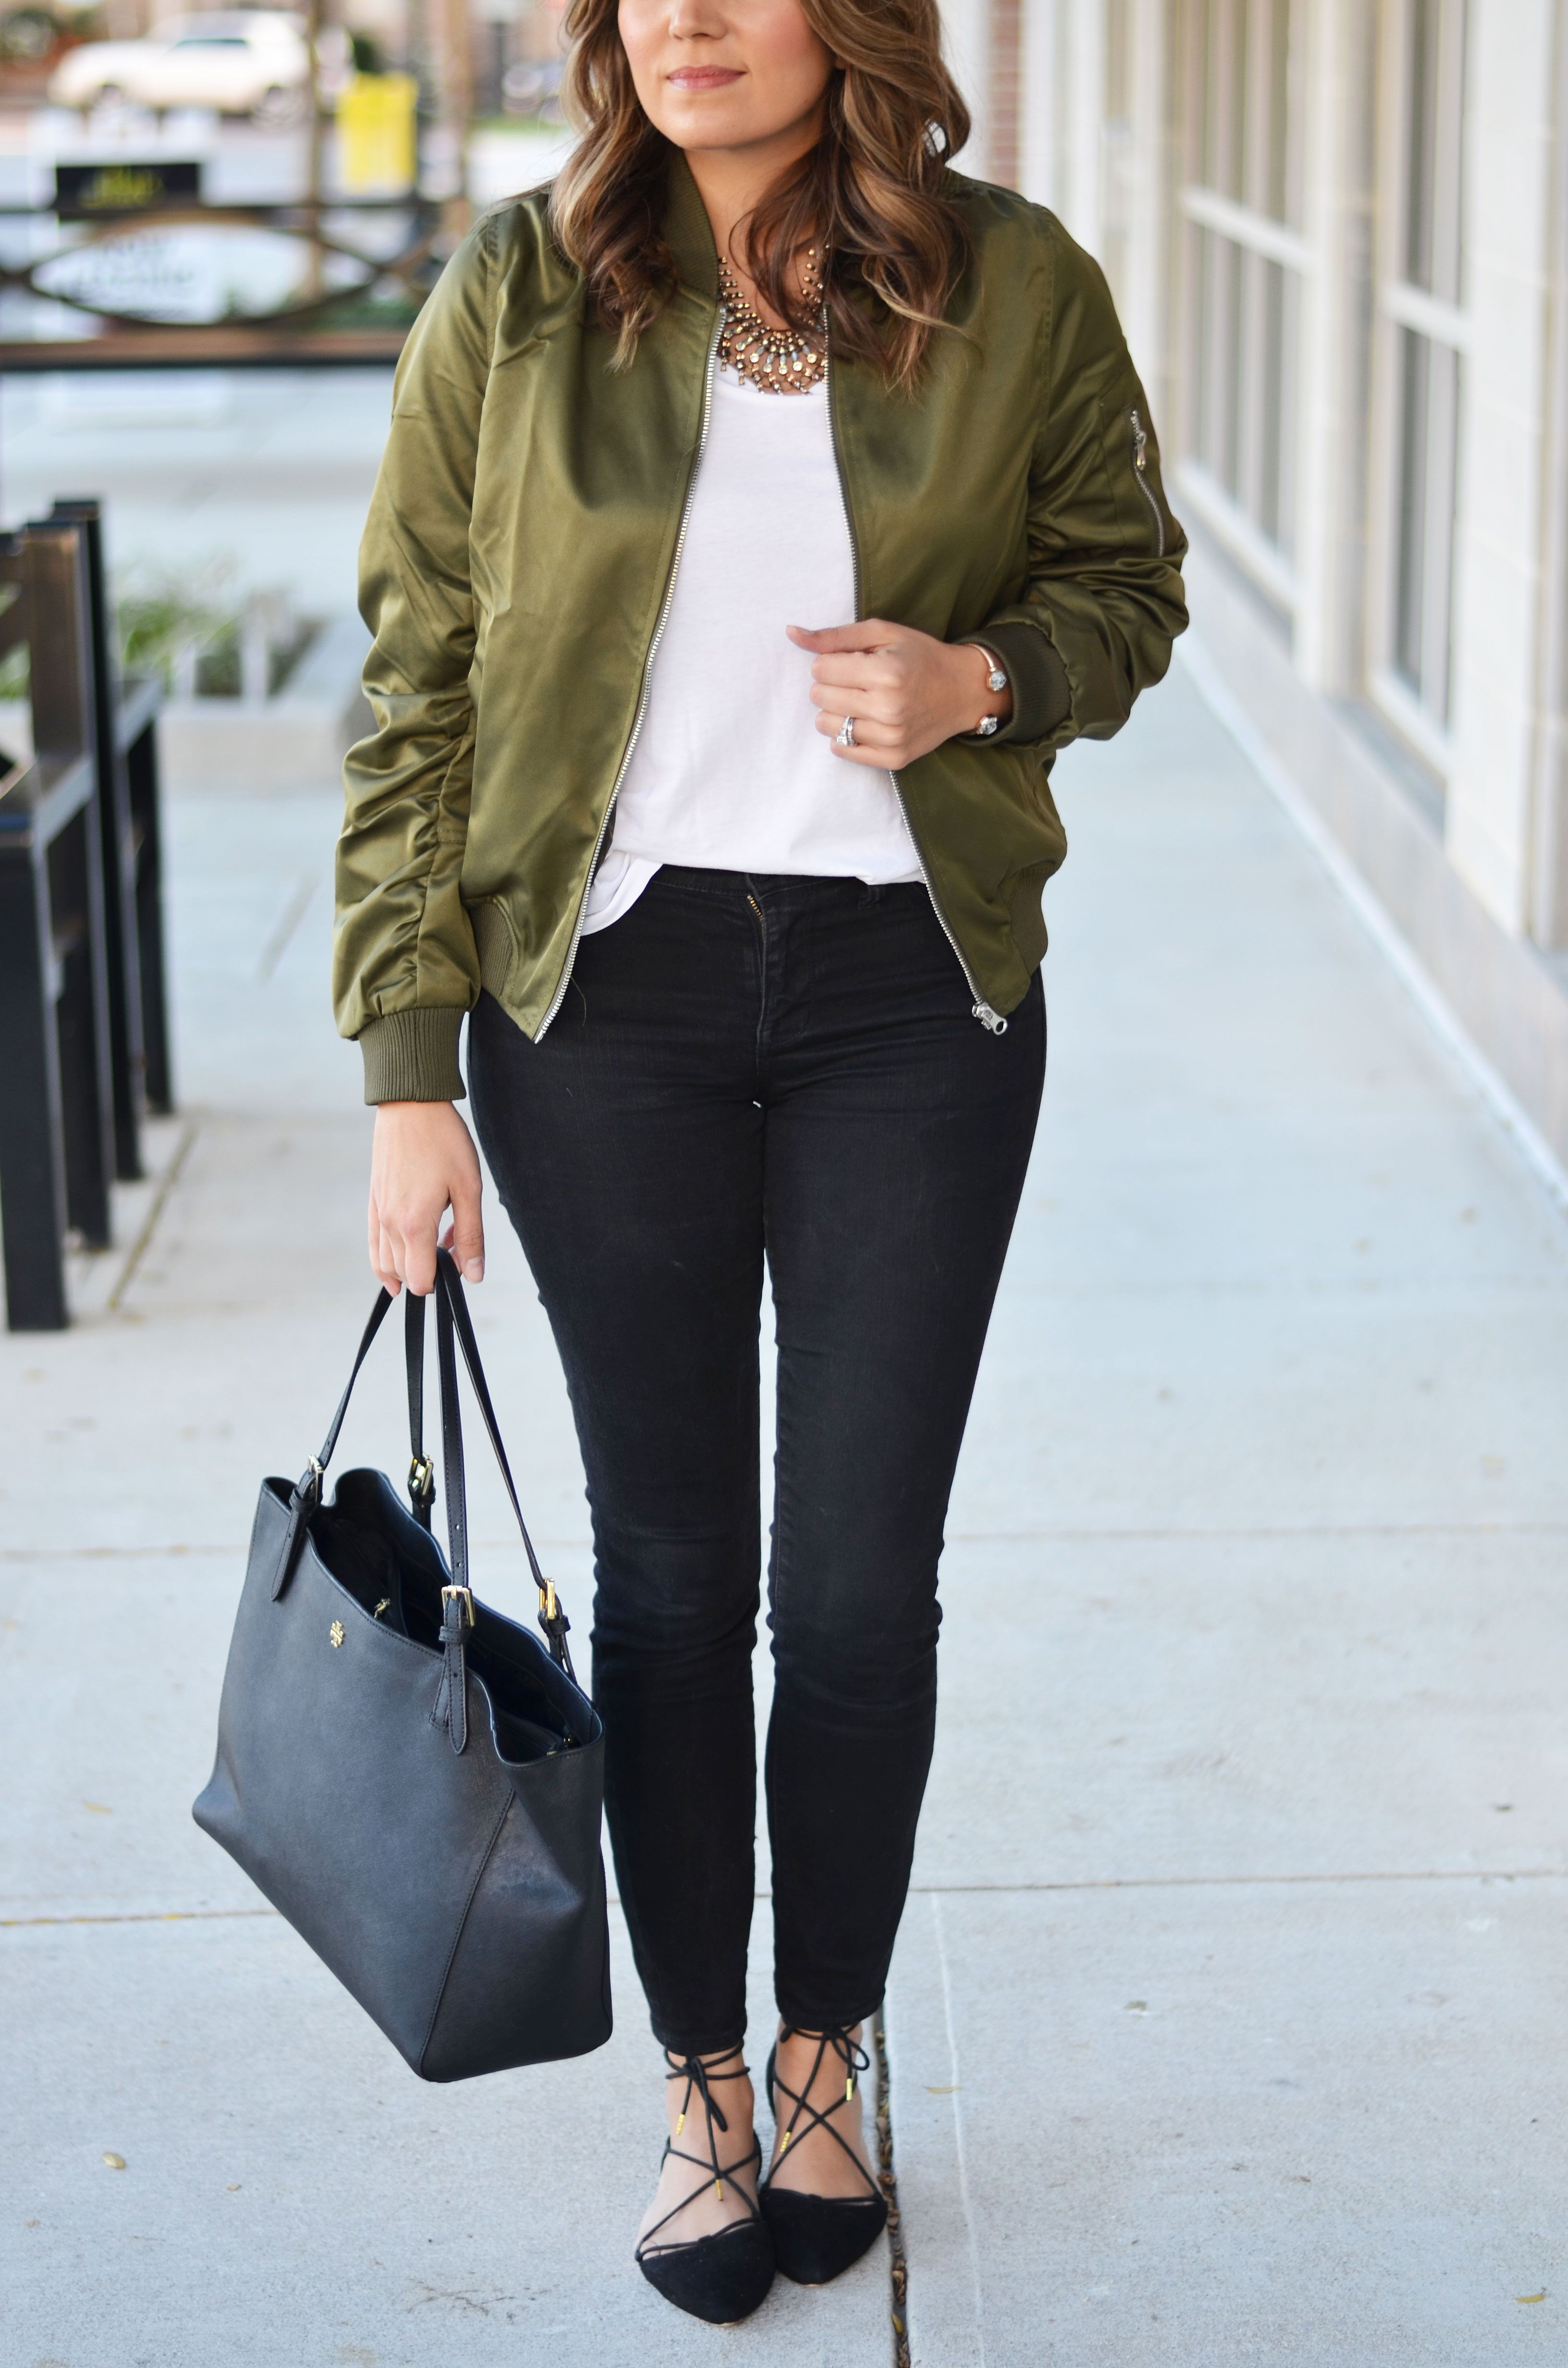 satin bomber jacket outfit idea - green bomber jacket with white ...